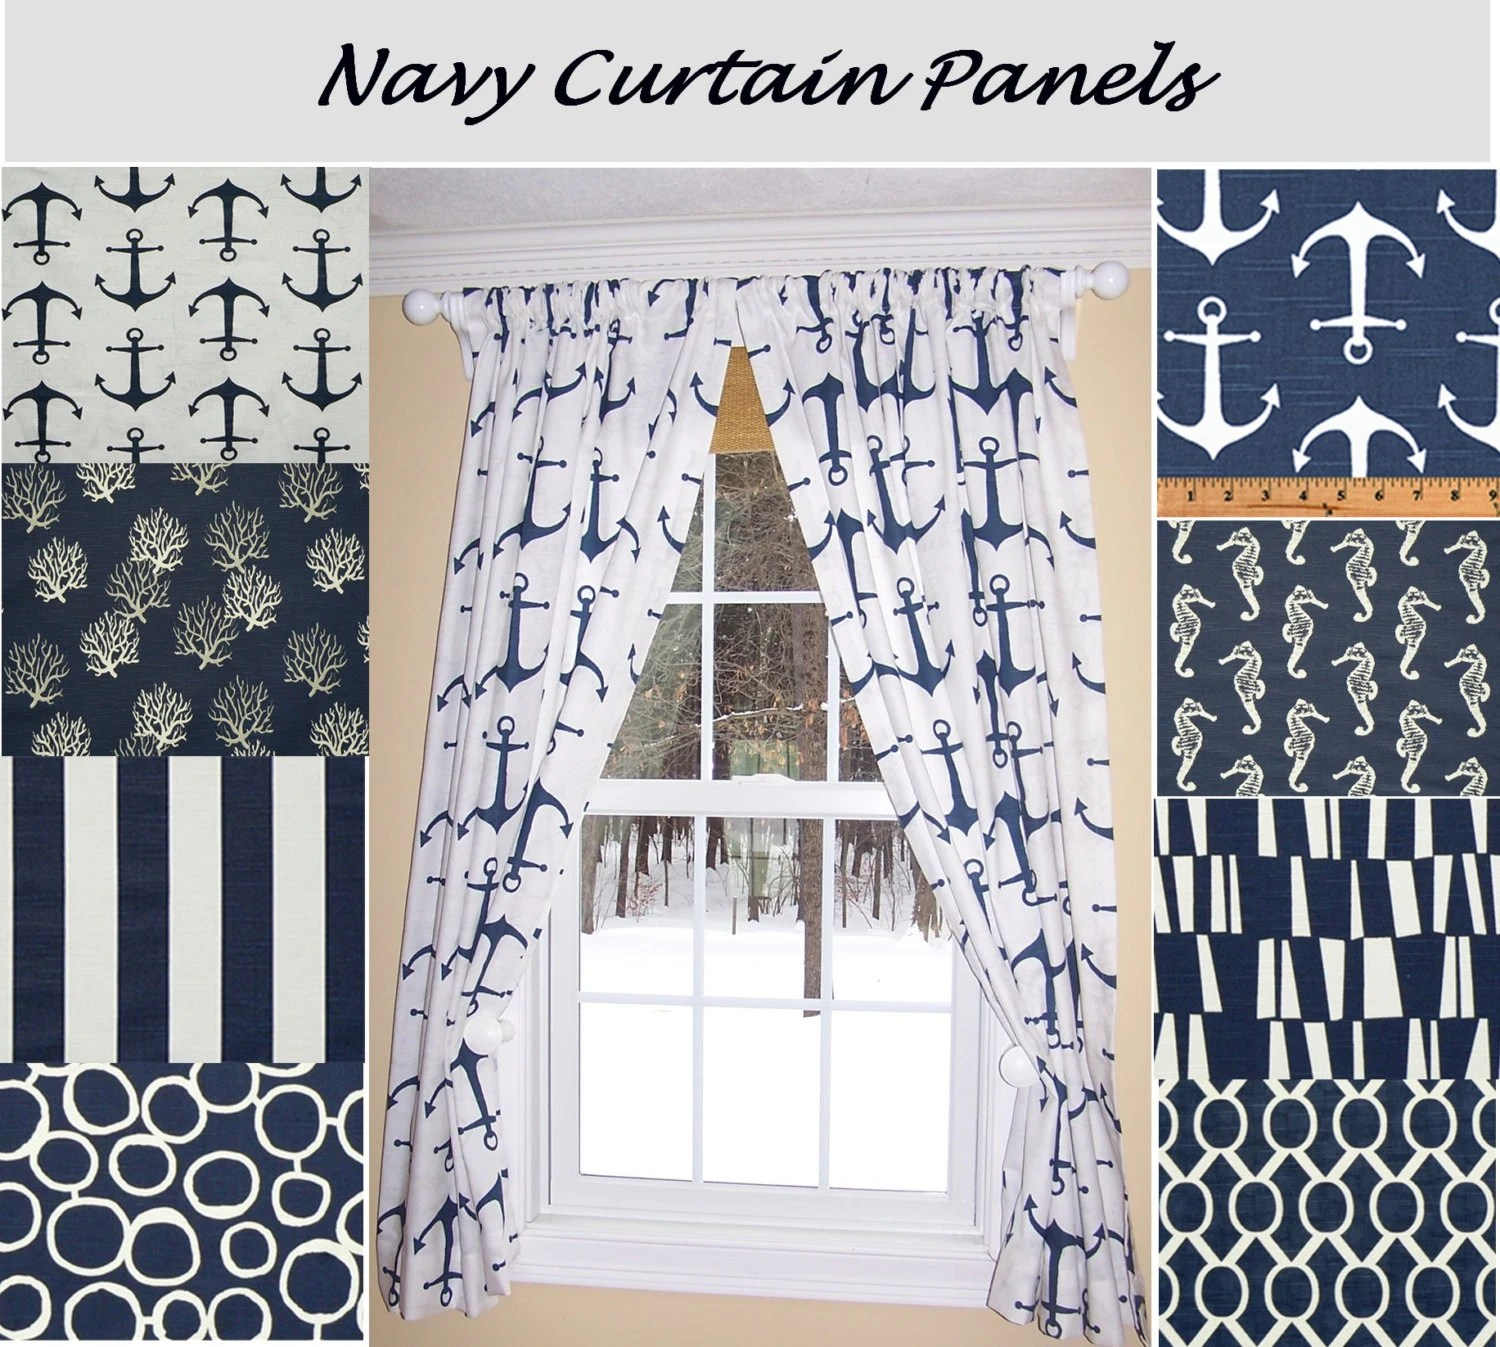 Nautical Curtainsnavy Curtainsblue Curtains Sailing Ocean